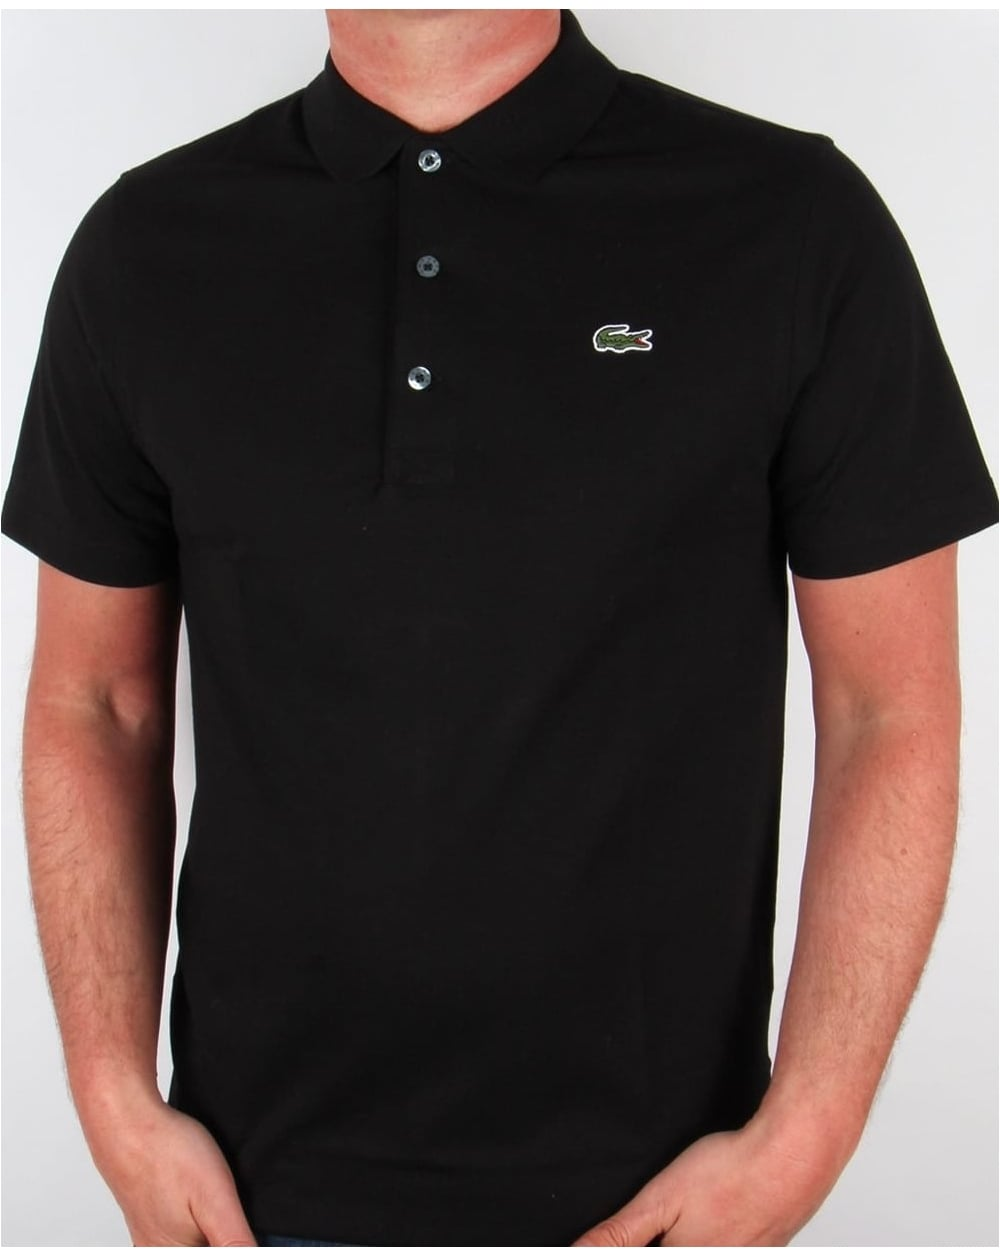 f71bbbf4ae74fb Lacoste Ultra-lightweight Knit Polo Shirt Black